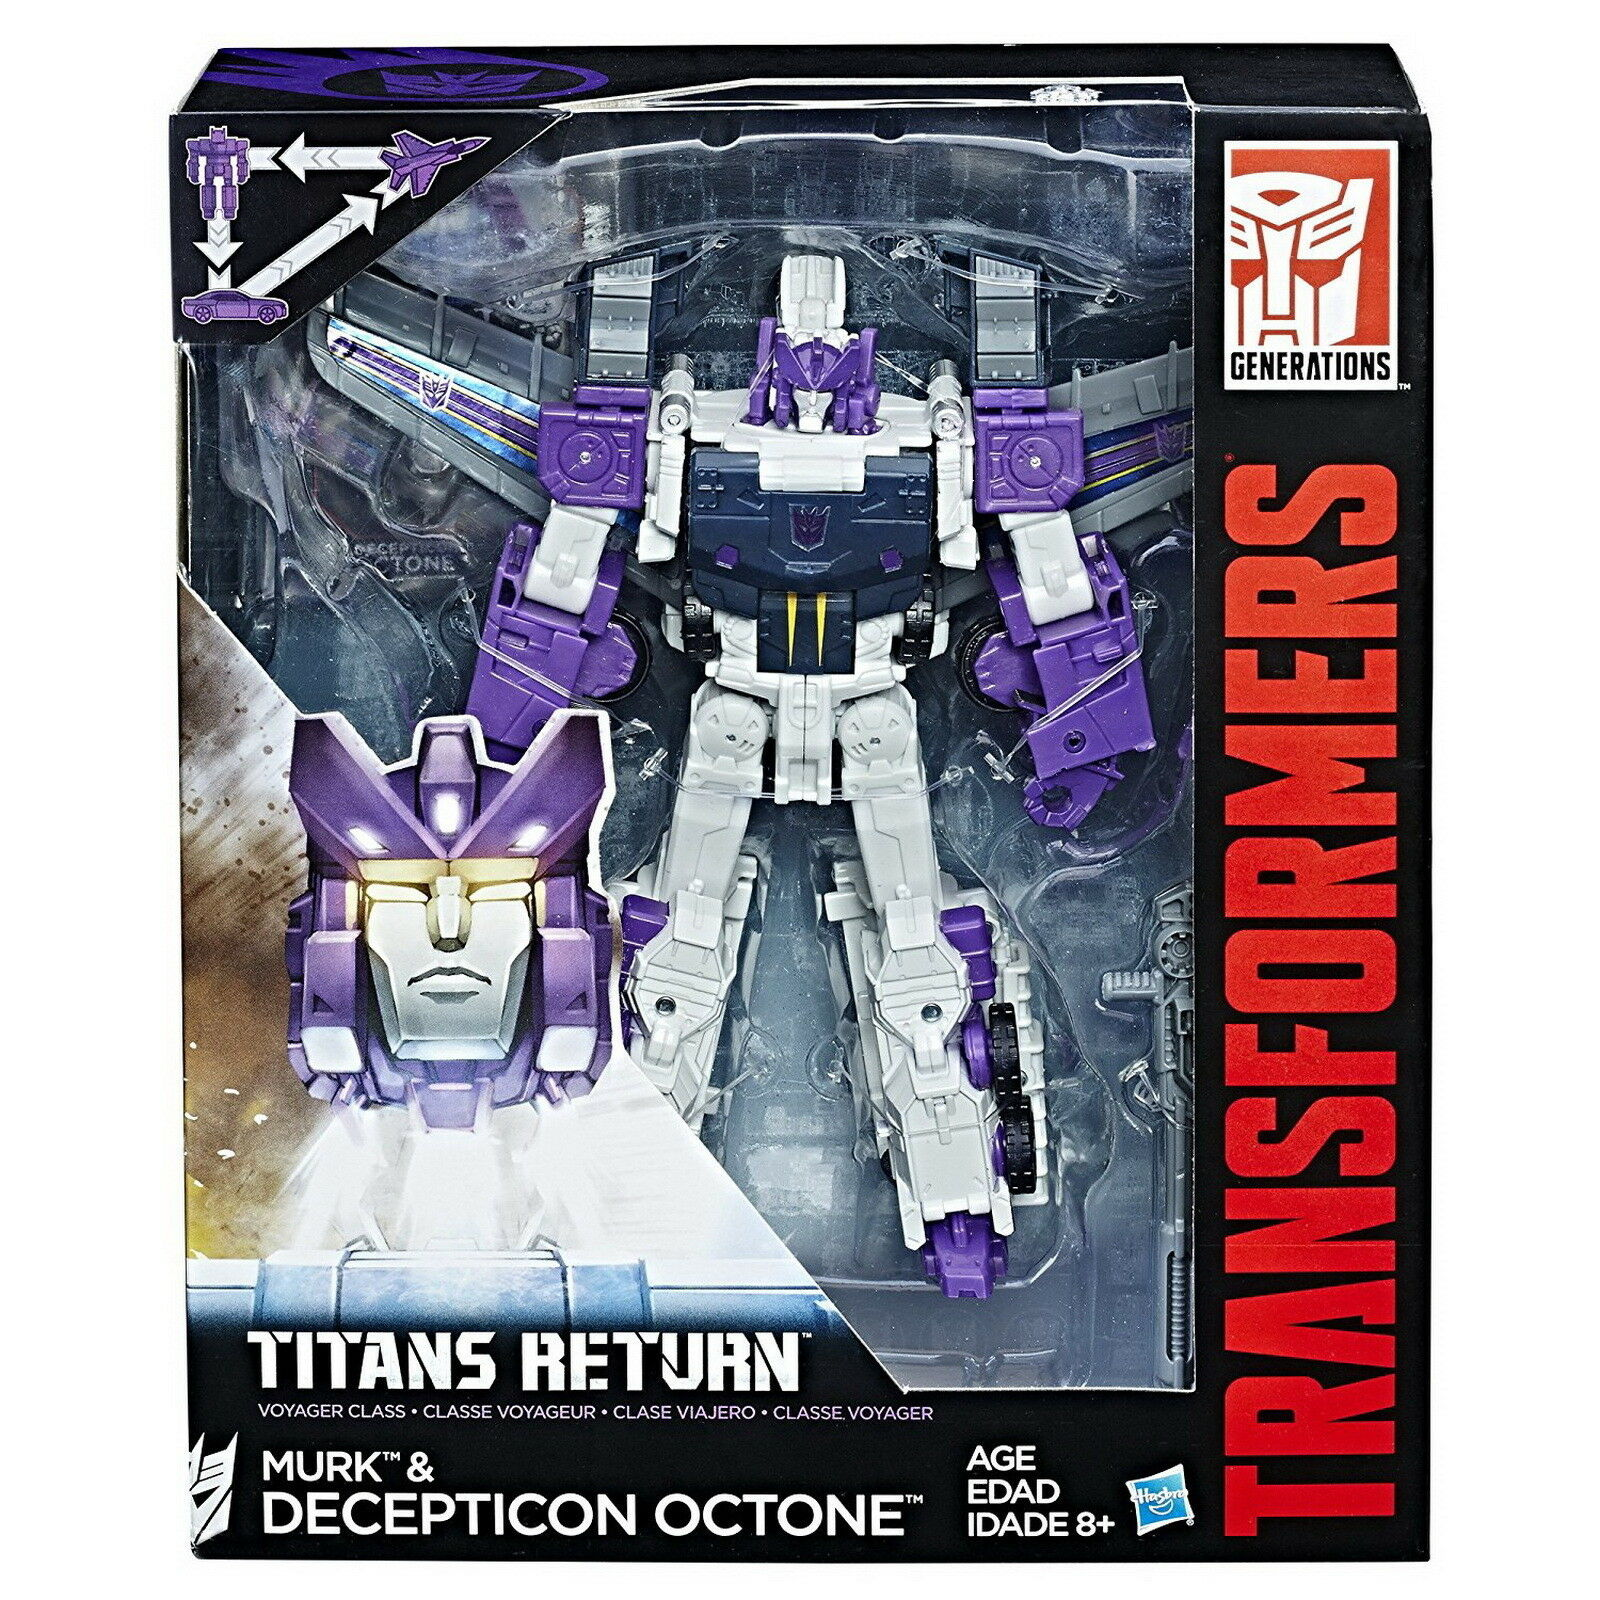 Transformers Generations Titans Return Voyager Class Decepticon Octone and Murk